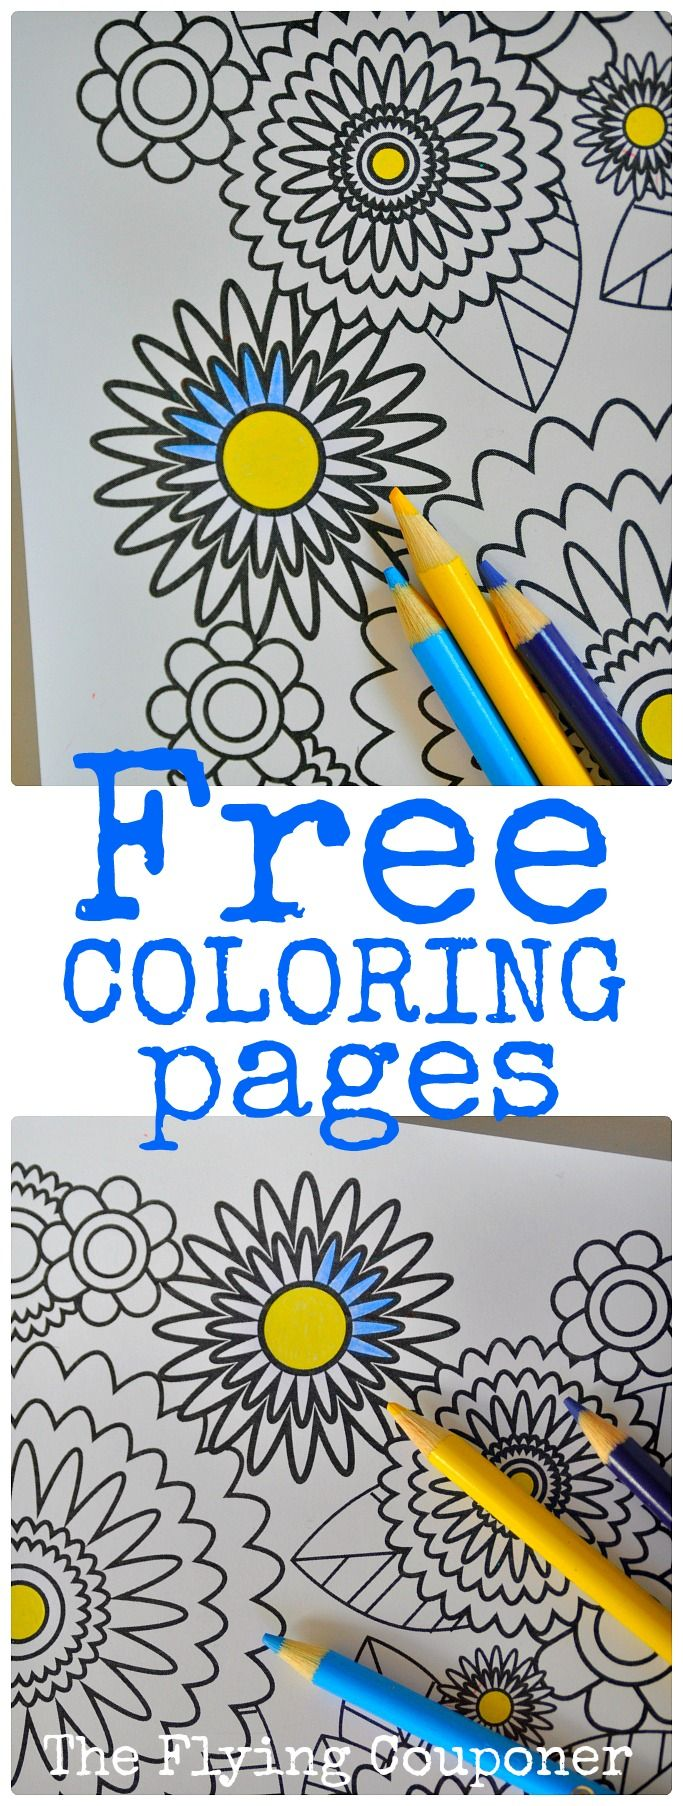 Colouring Pages for Adults and Kids | The Flying Couponer ...